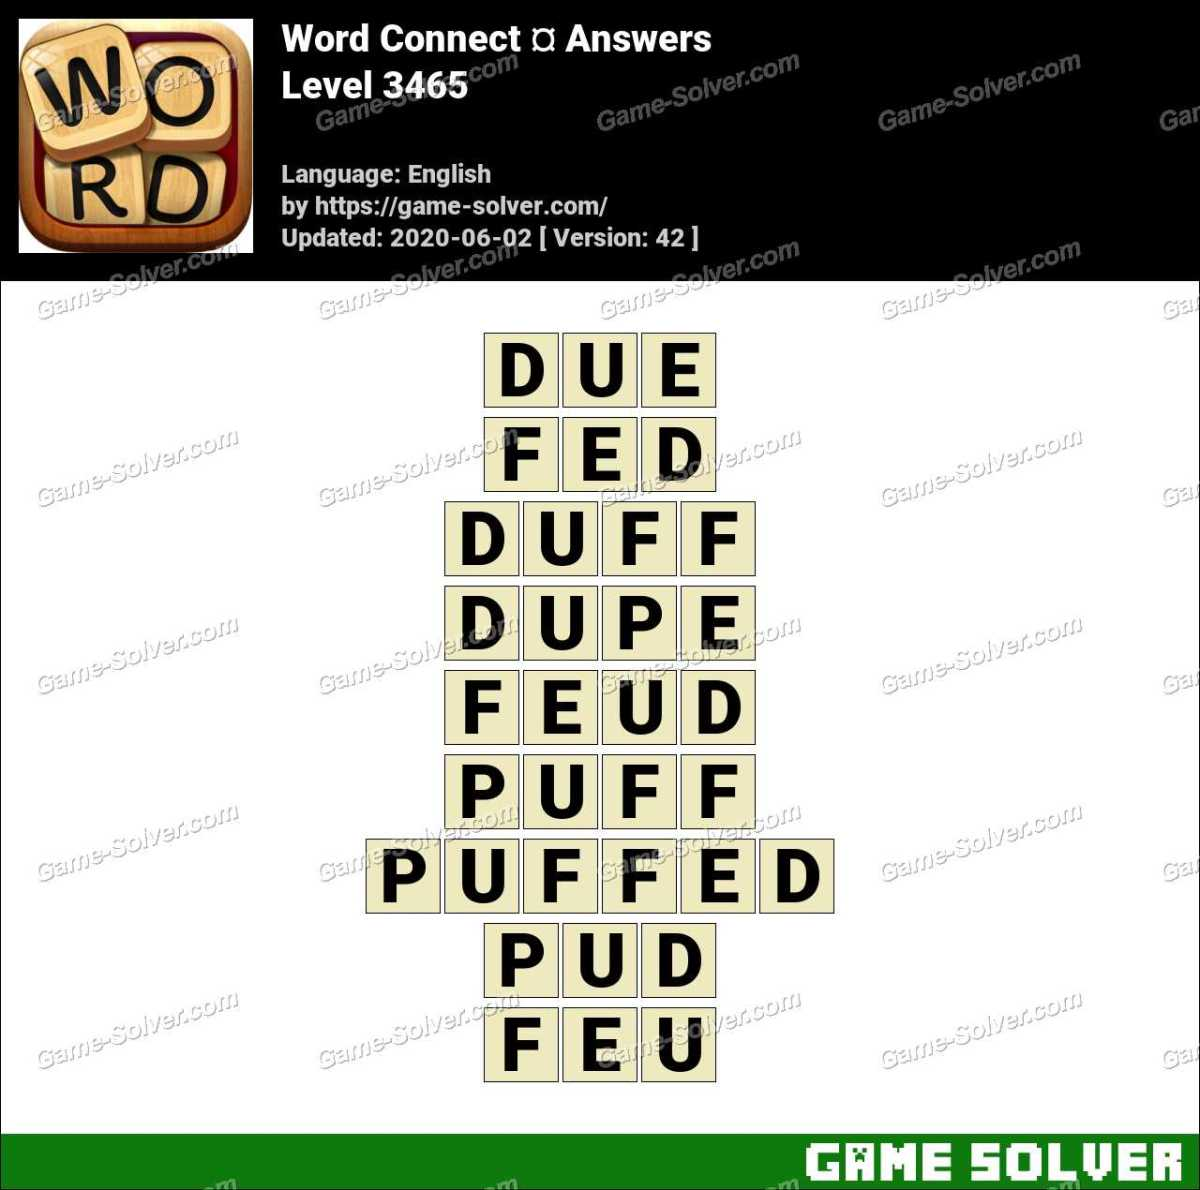 Word Connect Level 3465 Answers